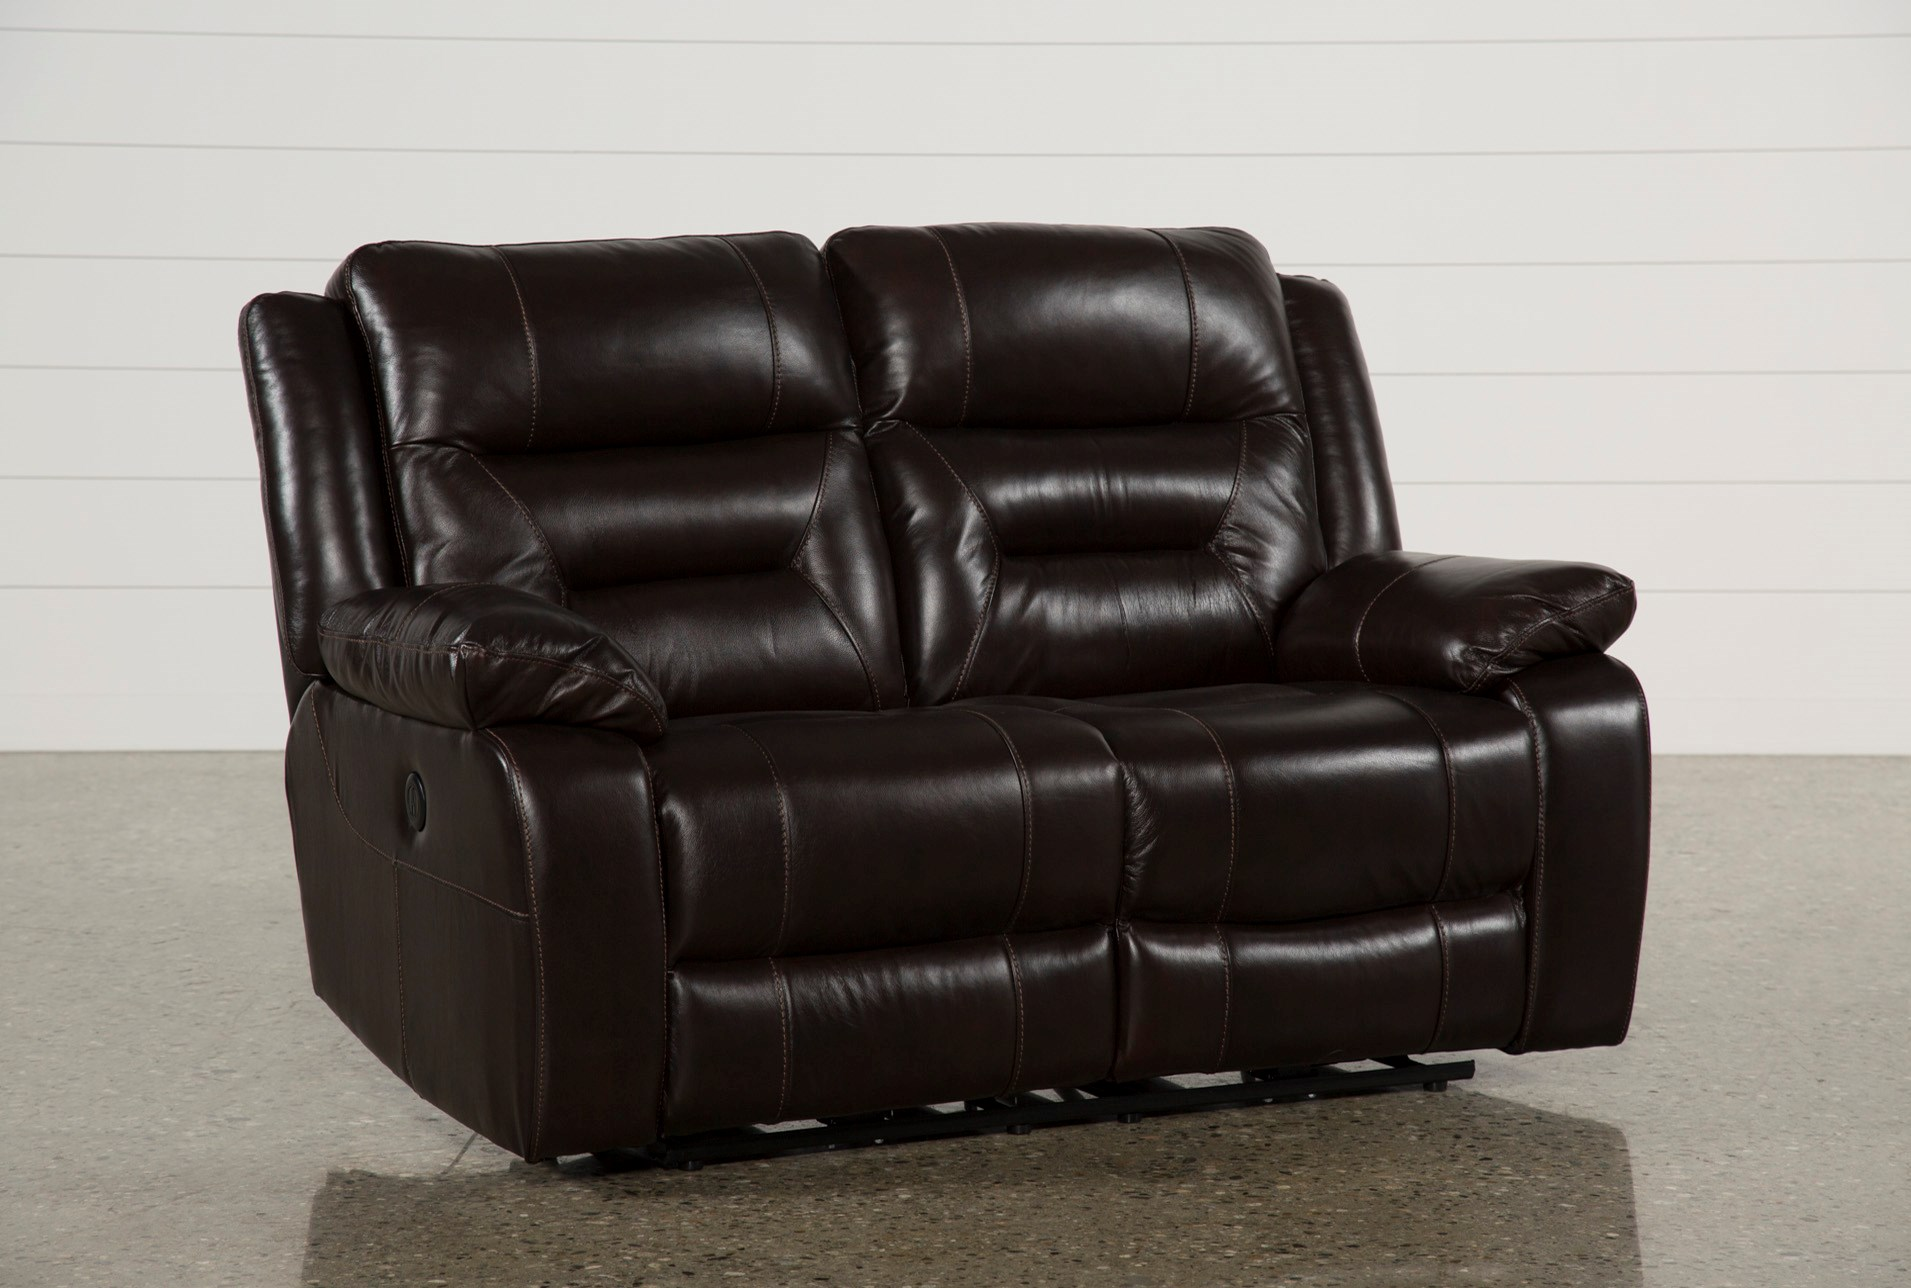 room futura and cruz iteminformation santa loveseat santacruz leather love lea living sofa